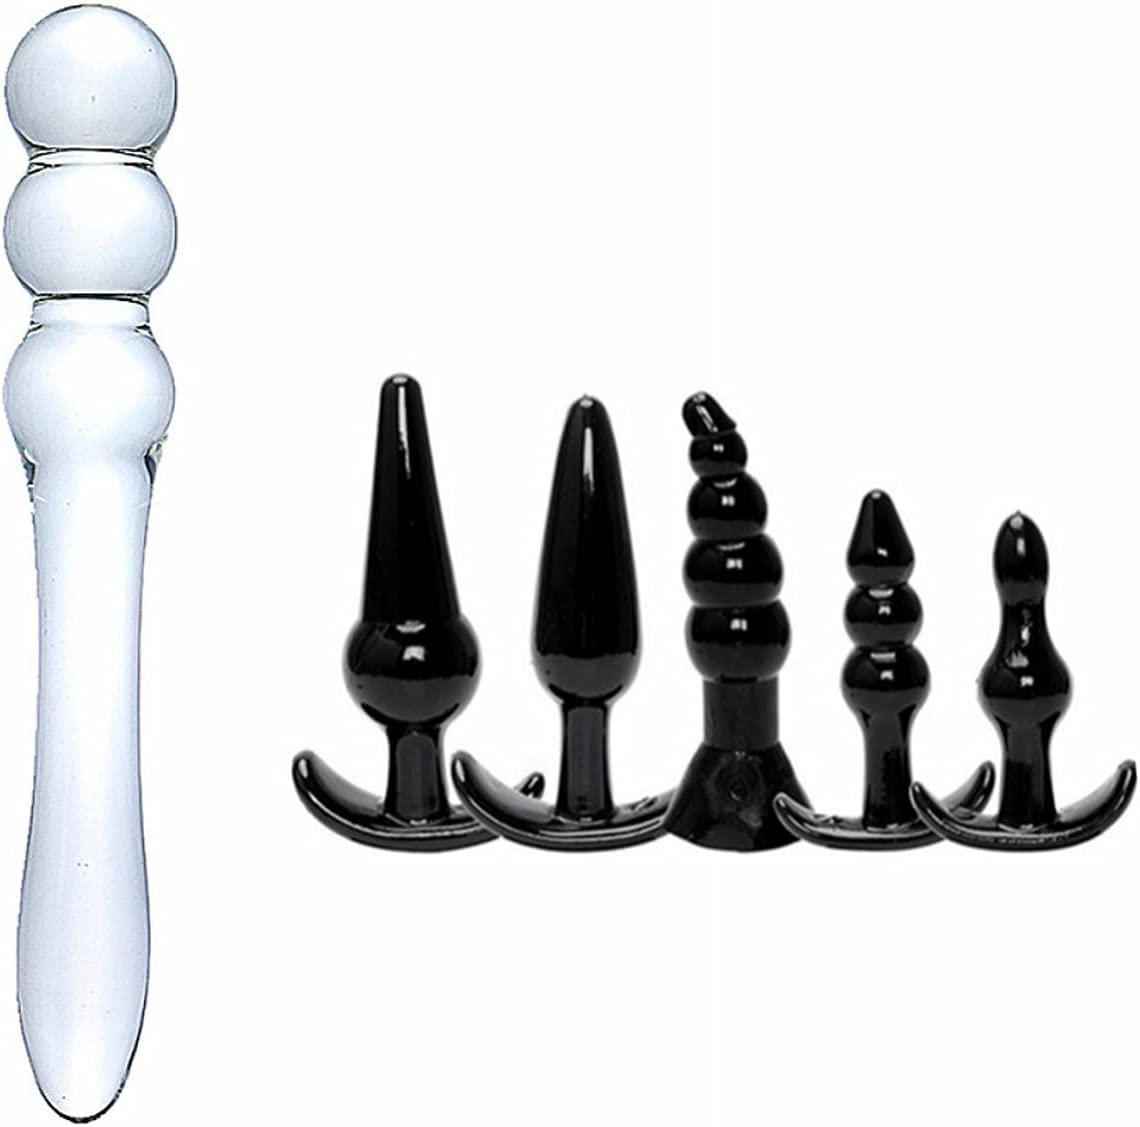 Glass Selling Butt Plug Anal Sex Ana Toy Trainer Kit Set gift